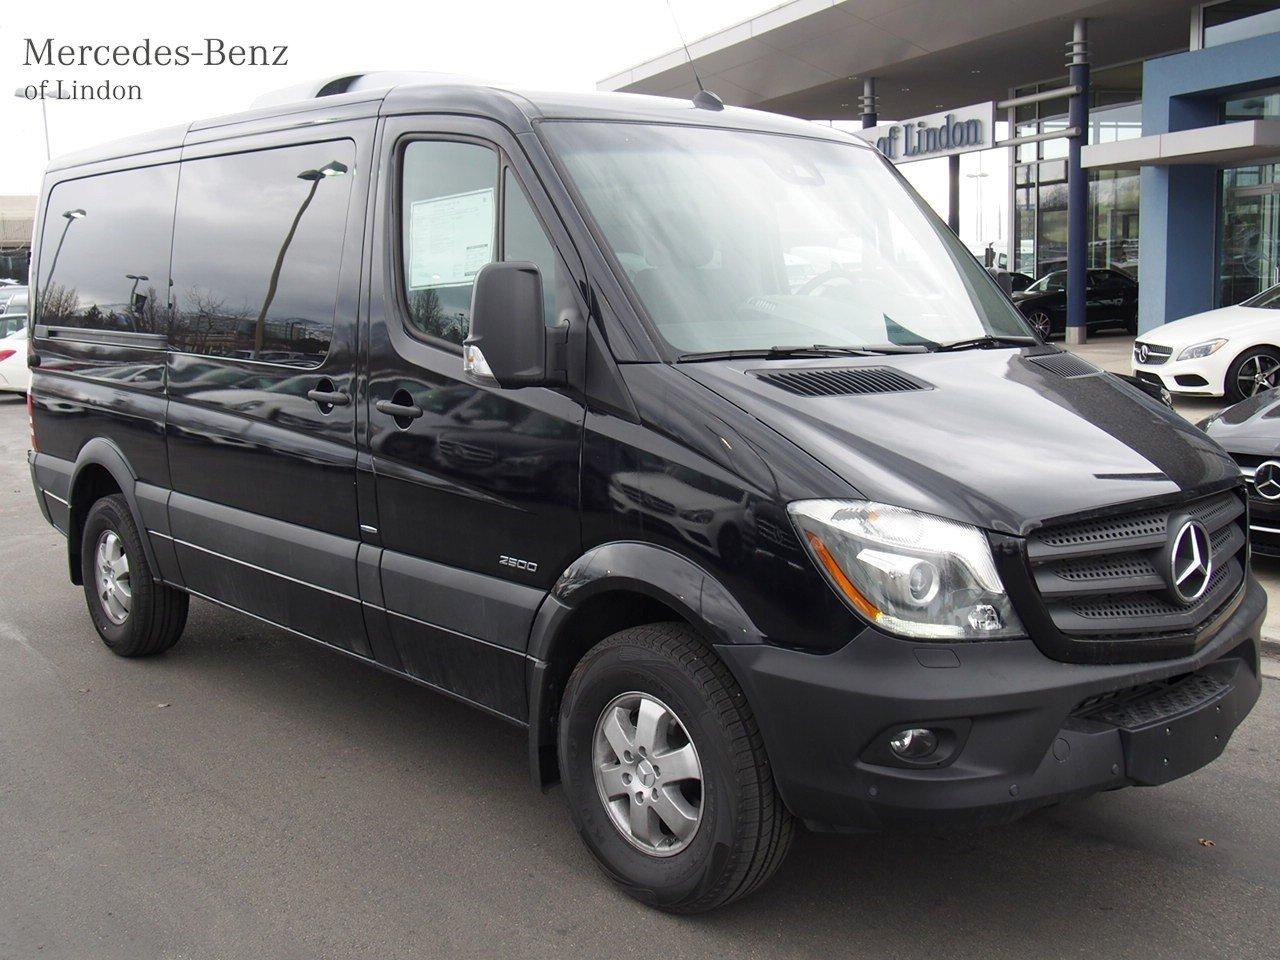 New 2016 mercedes benz sprinter passenger vans passenger for 7 passenger mercedes benz